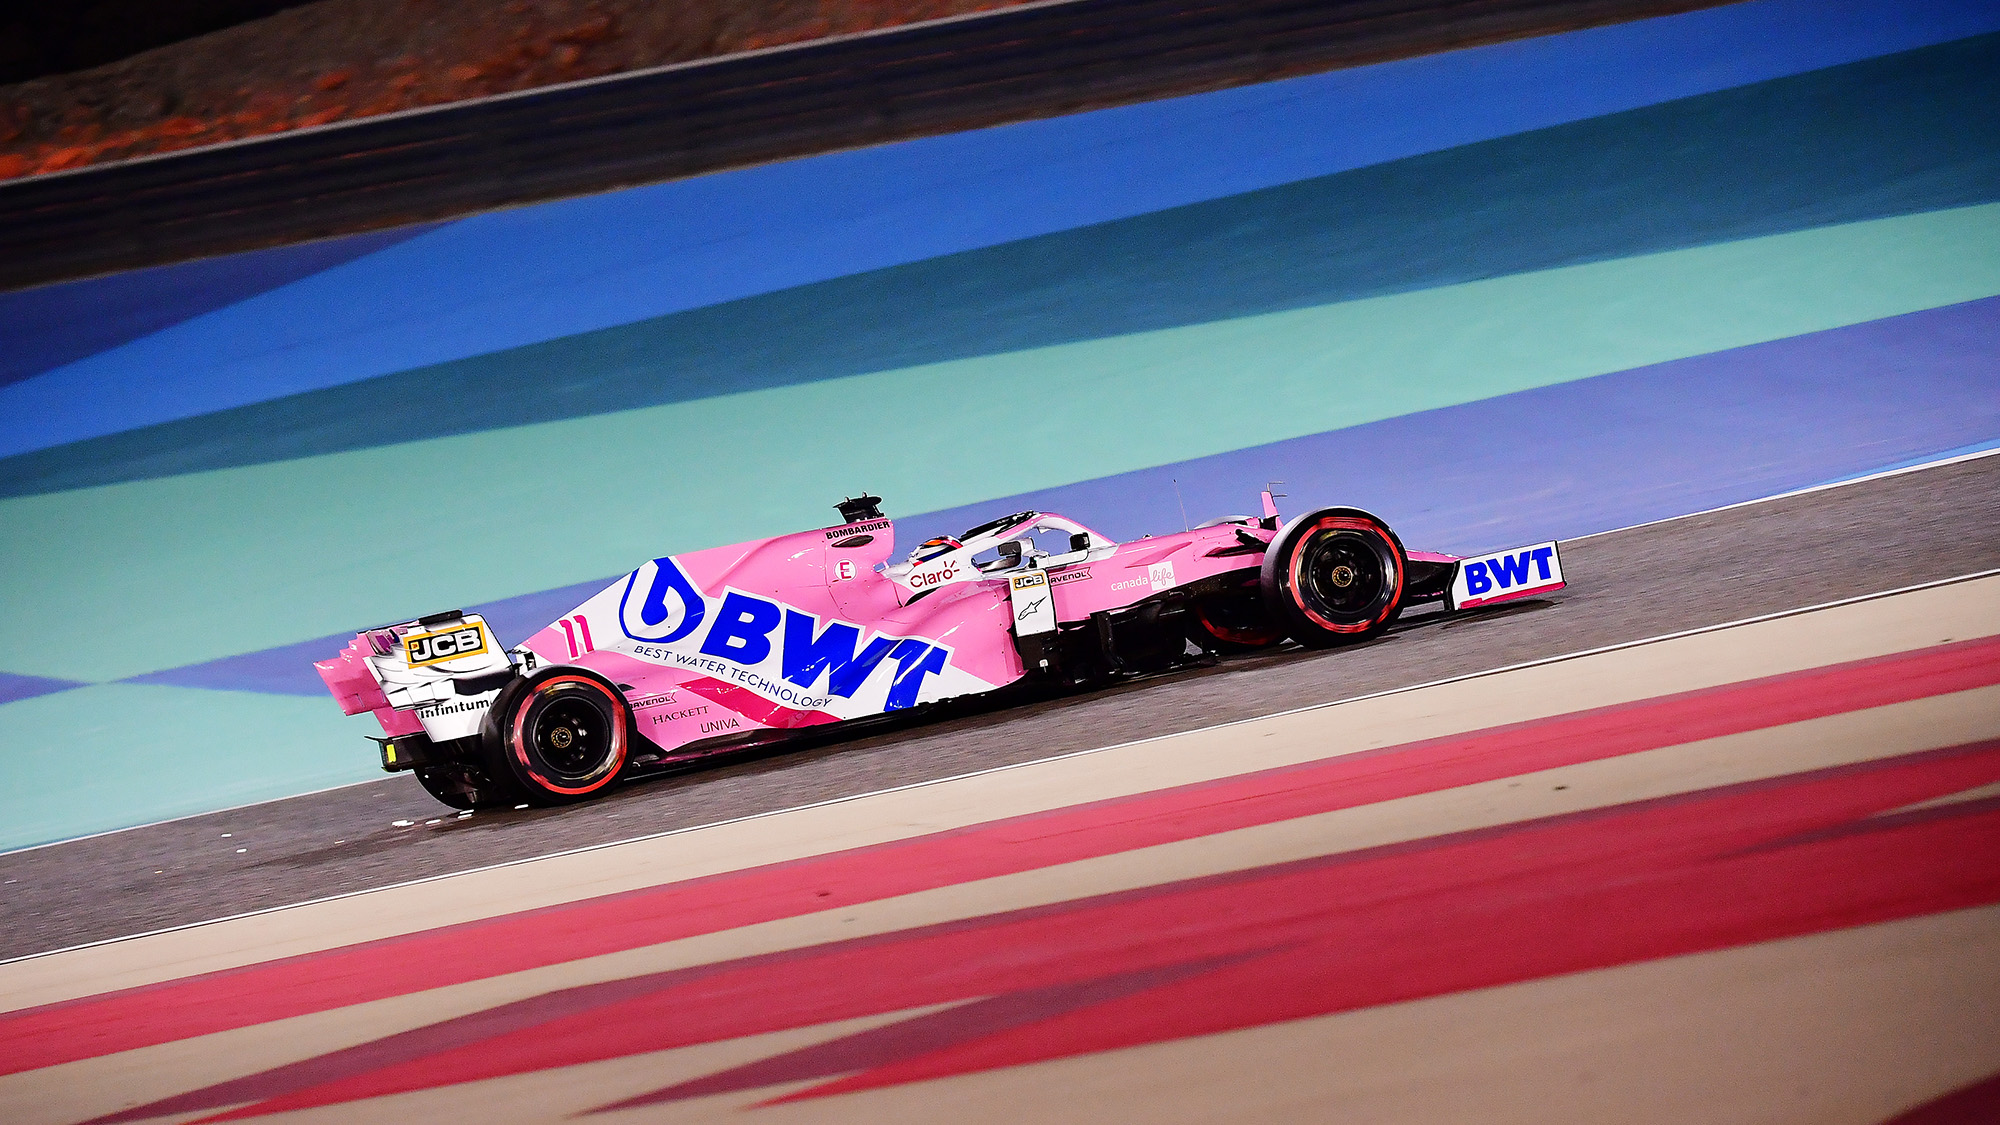 Sergio Perez in the Racing Point during qualifying for the 2020 F1 Bahrain Grand Prix